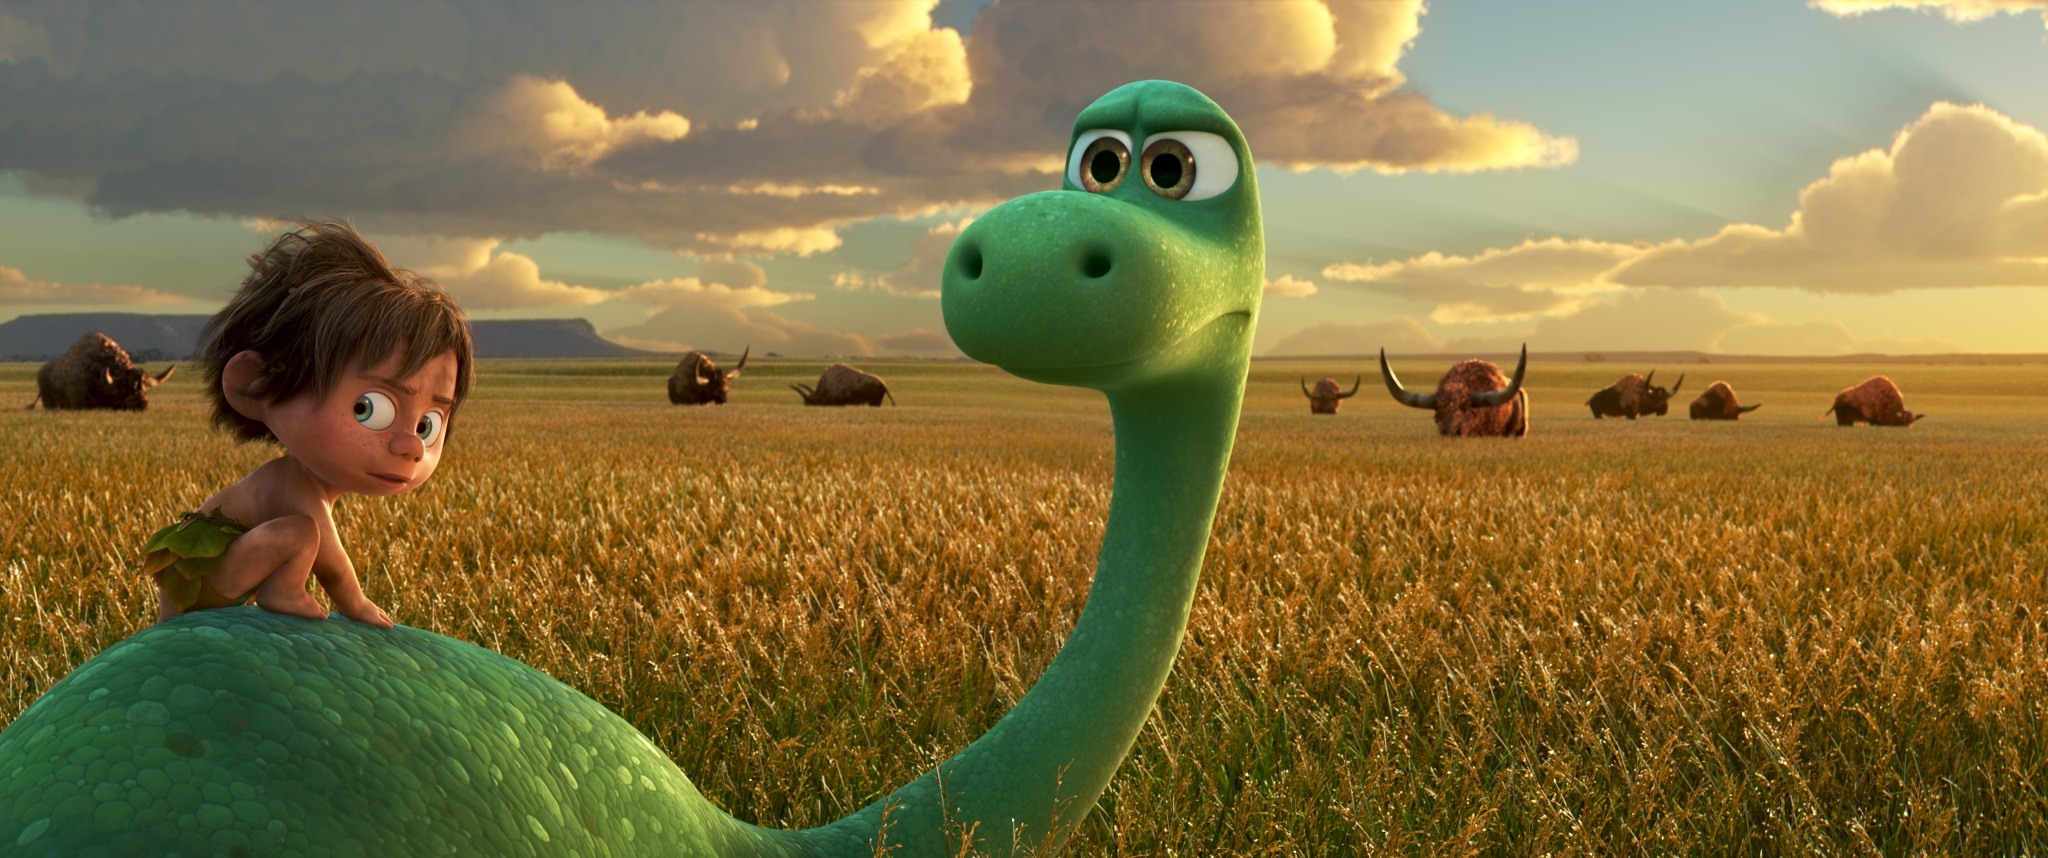 "AN UNLIKELY PAIR — In Disney•Pixar's ""The Good Dinosaur"" Arlo, an Apatosaurus, encounters a human named Spot. Together, they brave an epic journey through a harsh and mysterious landscape. Directed by Peter Sohn, ""The Good Dinosaur"" opens in theaters nationwide Nov. 25, 2015. ©2015 Disney•Pixar. All Rights Reserved."